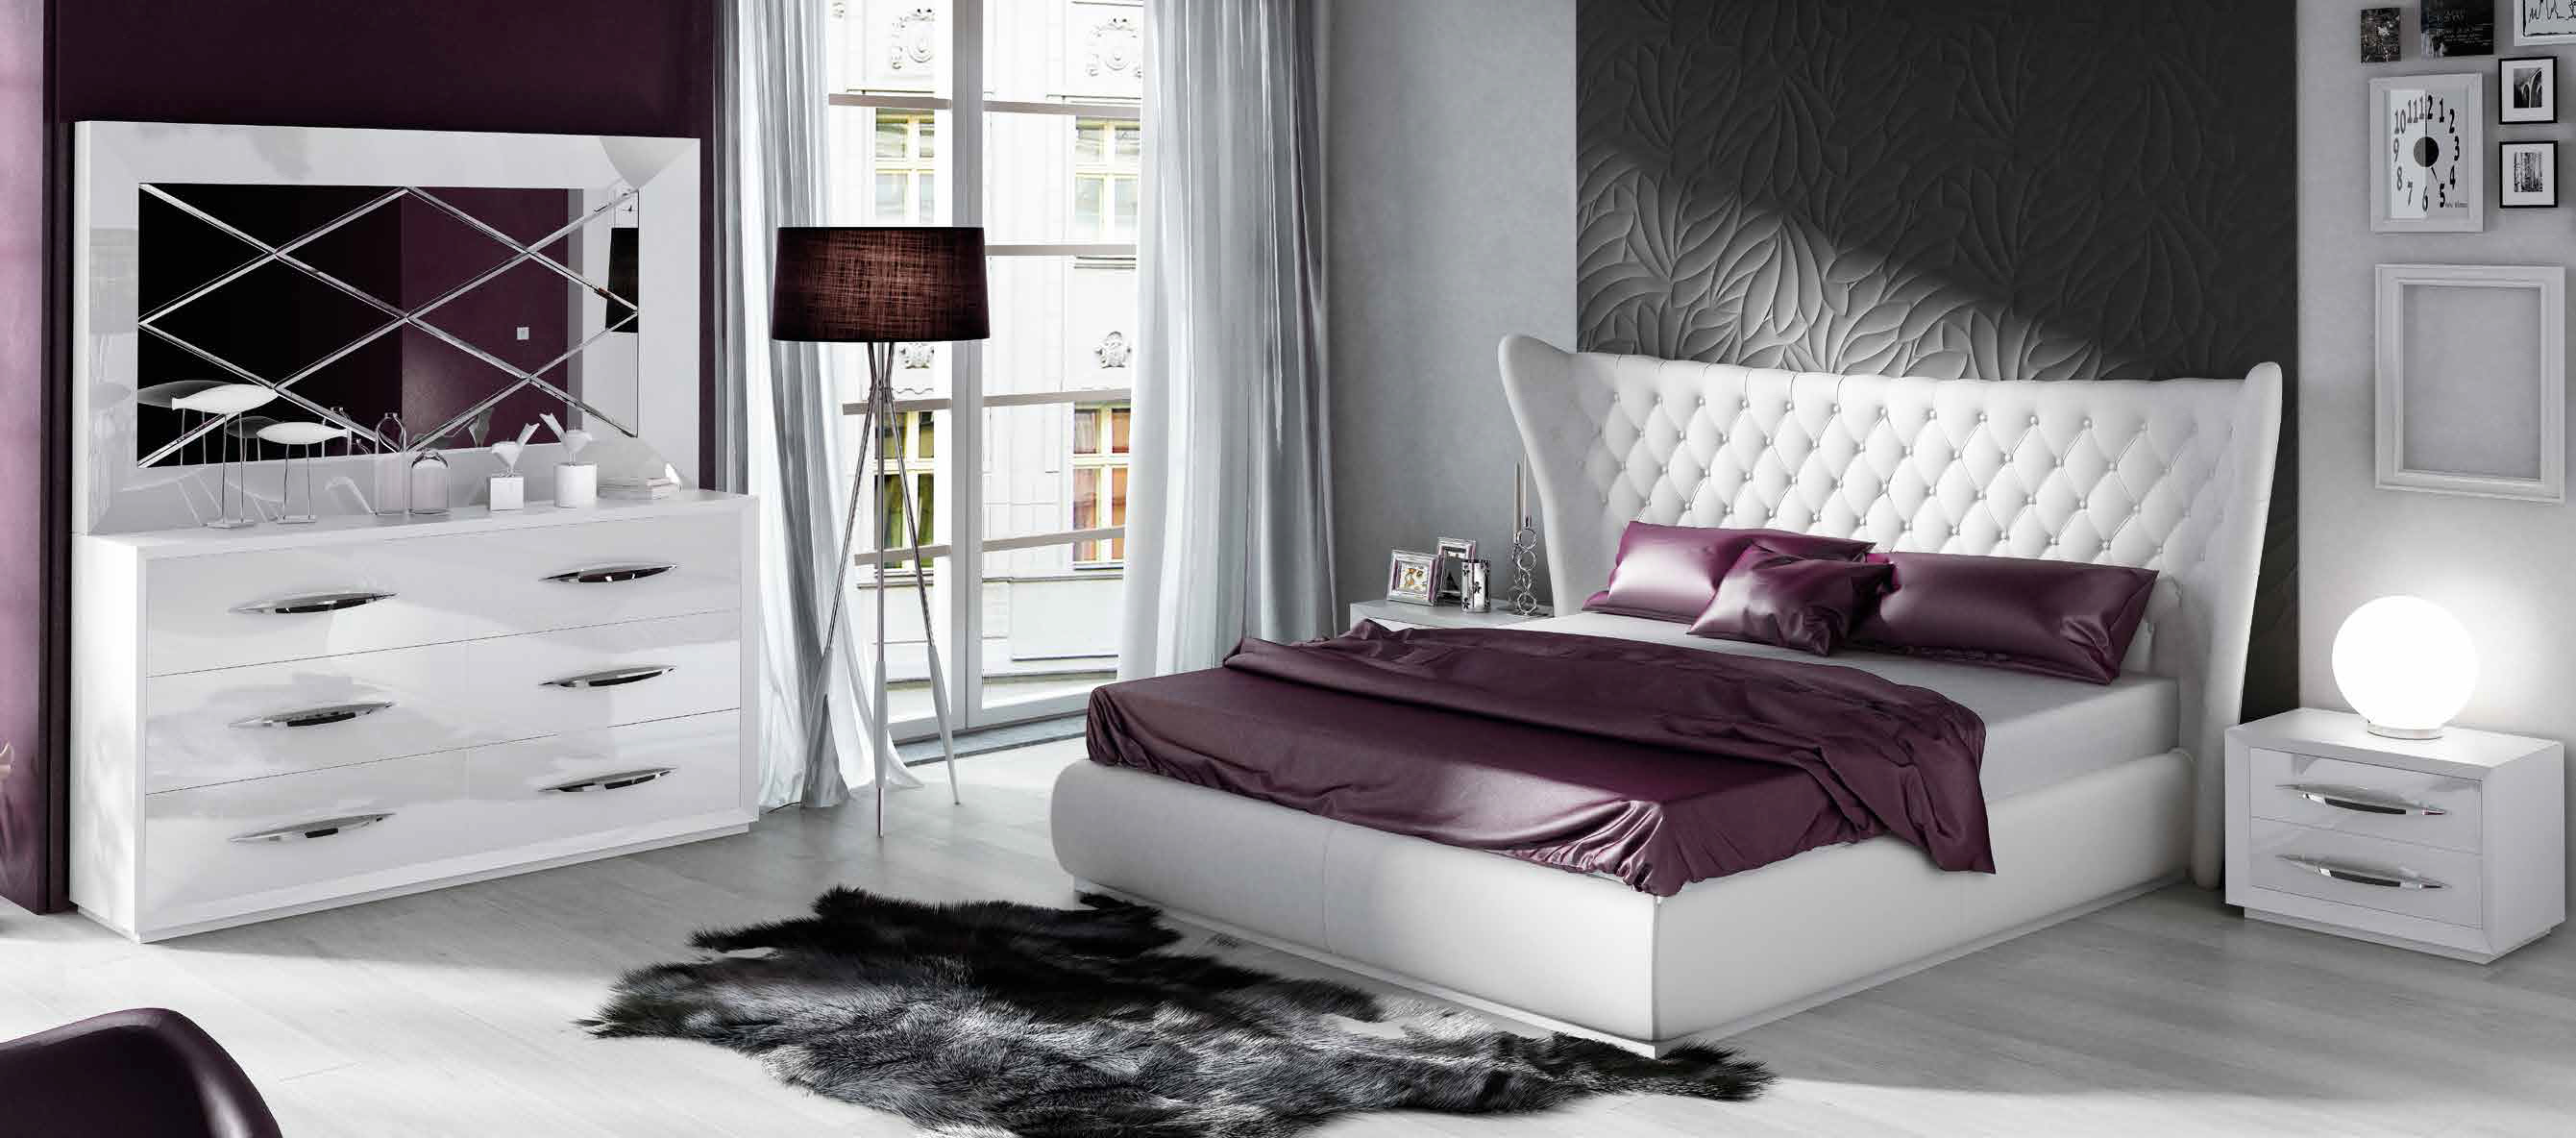 Brands Franco Furniture Bedrooms vol1, Spain DOR 83